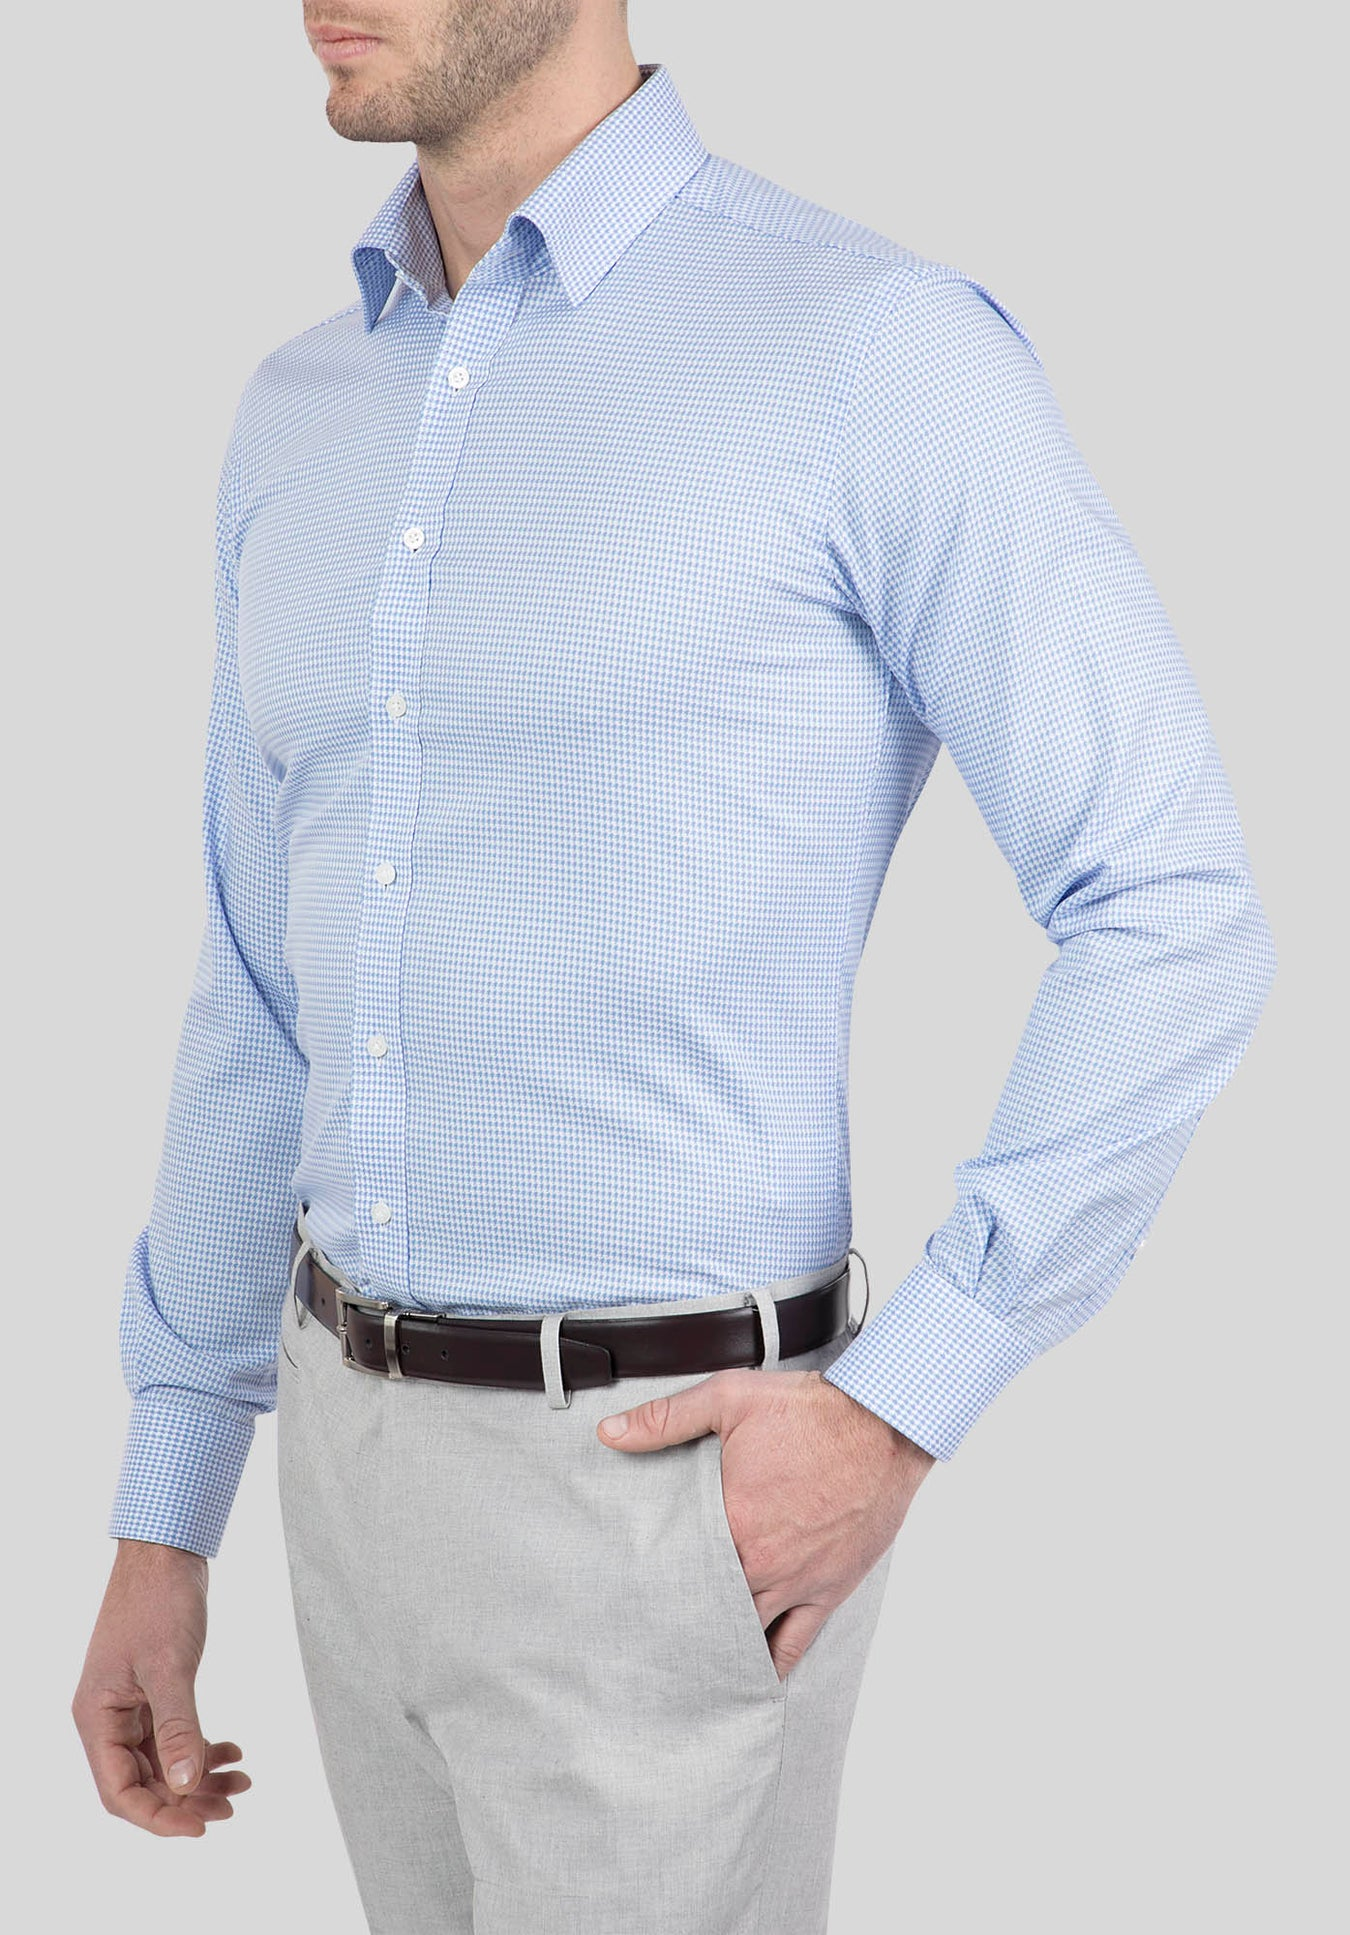 PIONEER SHIRT FJI924 - Light Blue